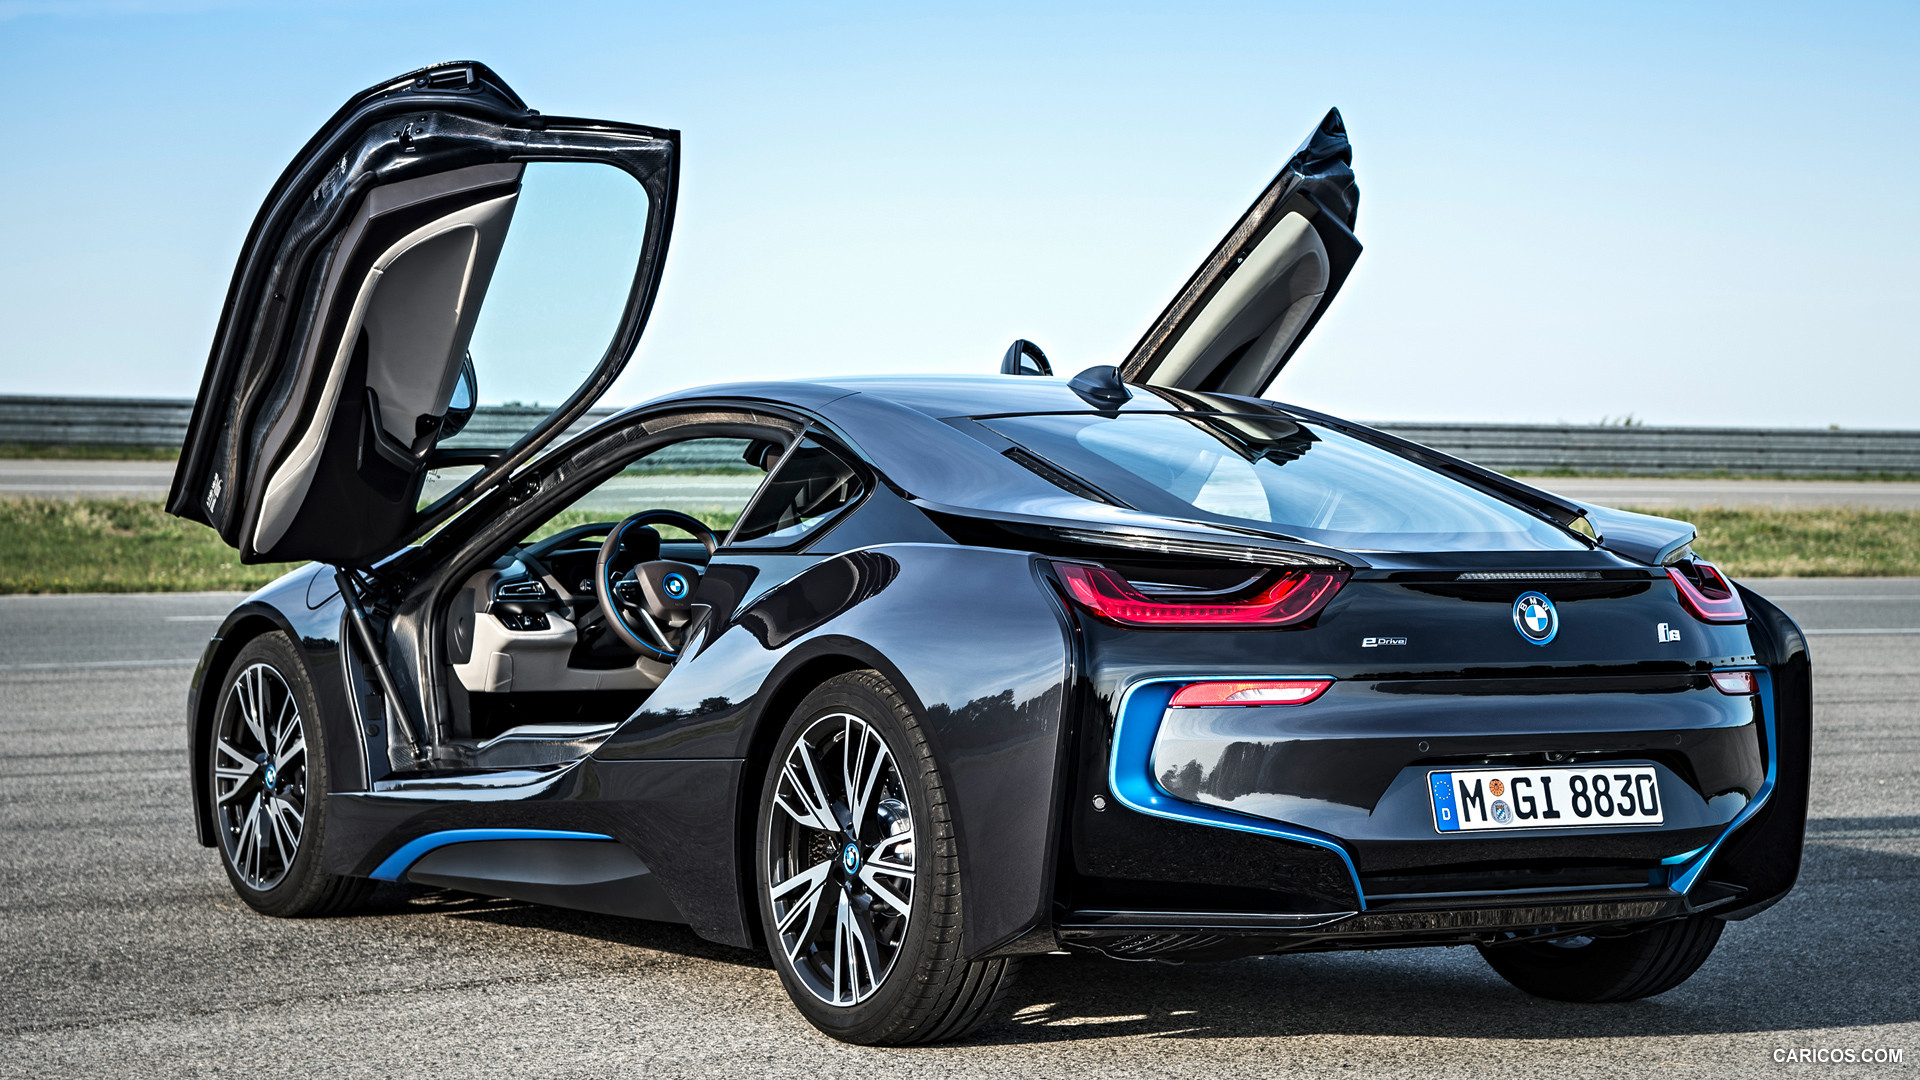 Second Gen Bmw I8 Could Come With 750hp Moto Networks